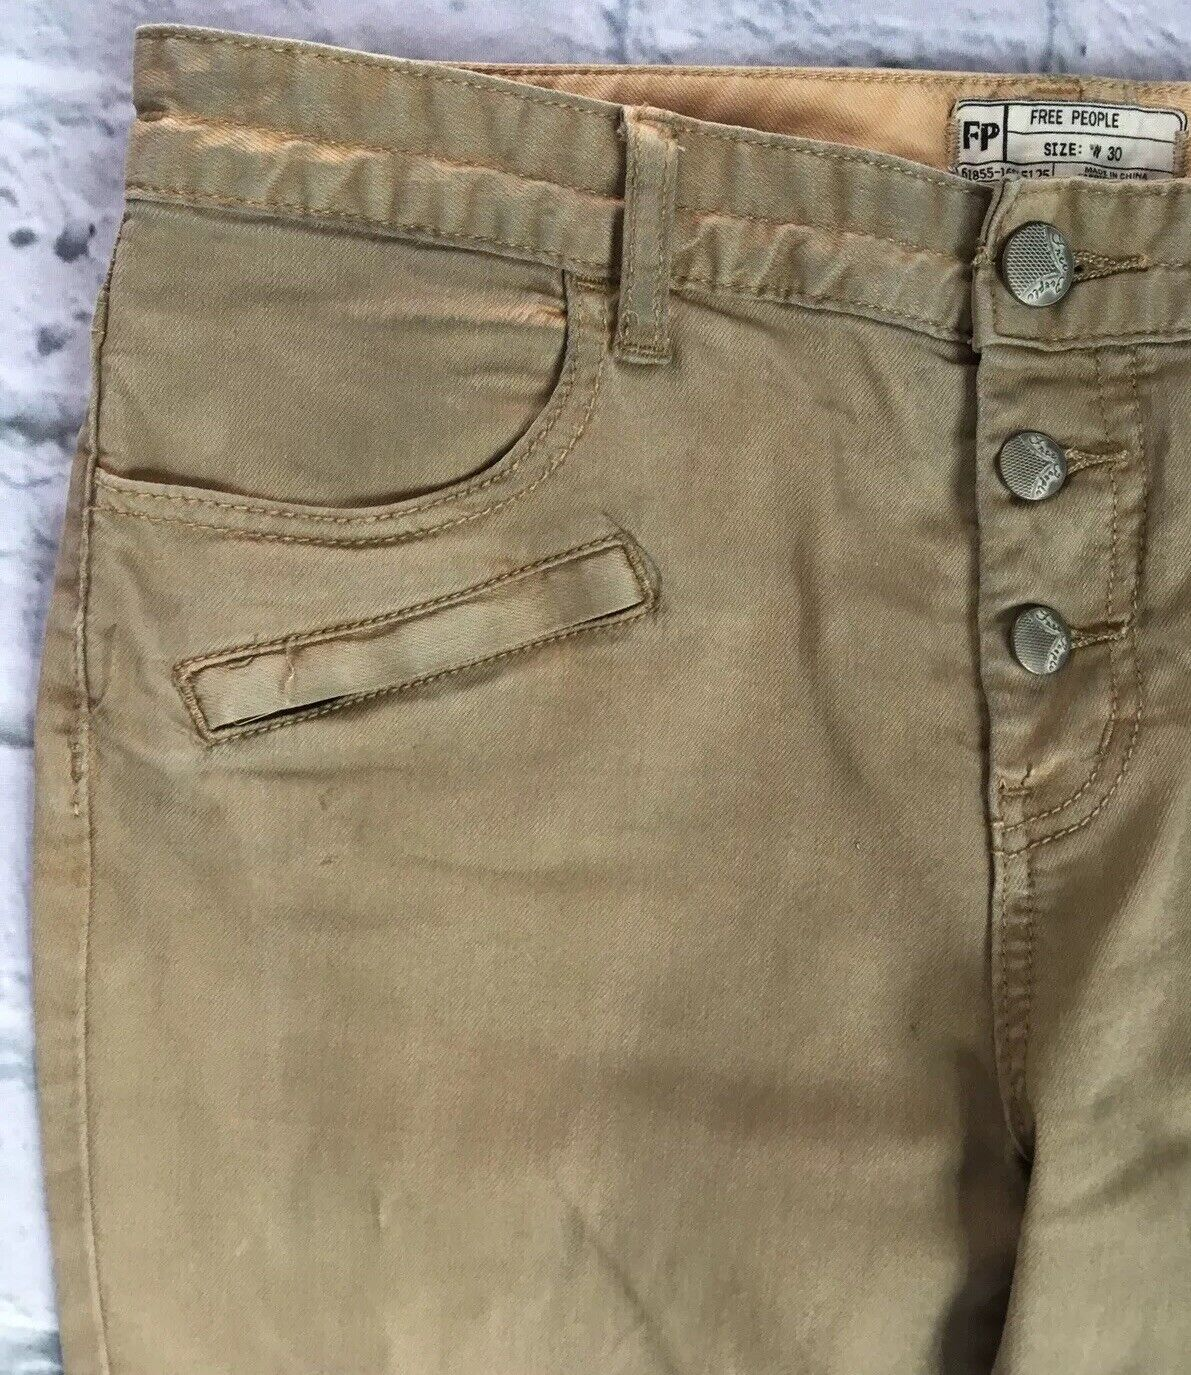 Free People W 30 Buttonfly Moto Skinny Dyed Camel Brown Jeans Zippers L 28.75